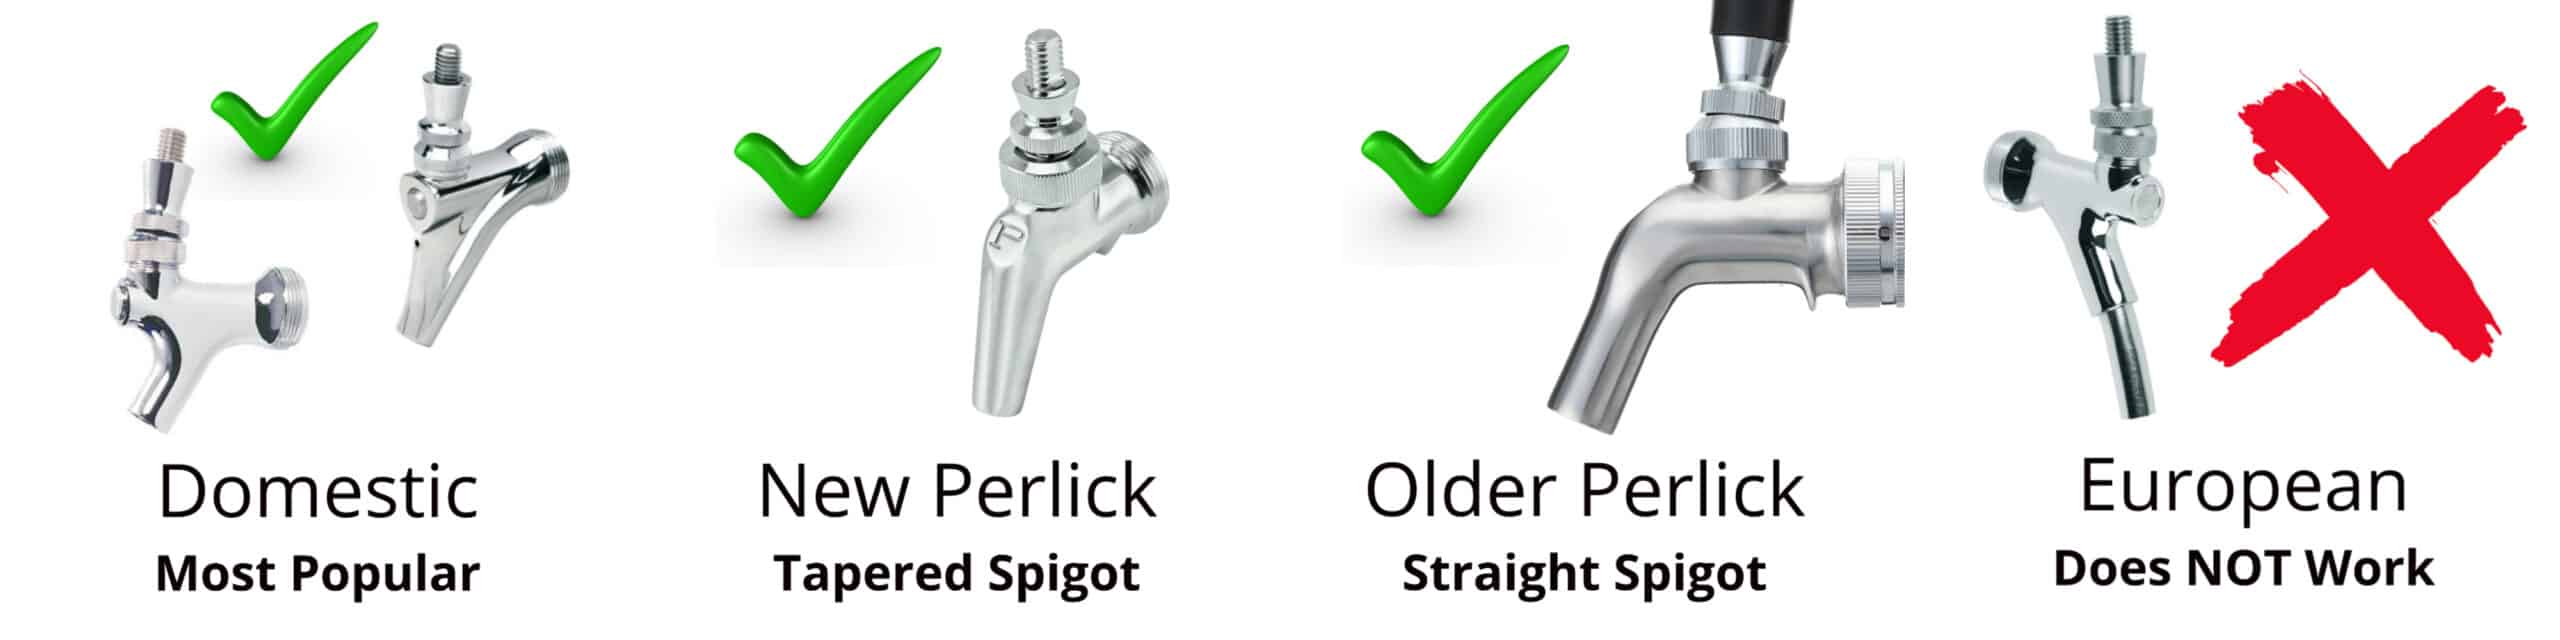 Beer Faucet Types